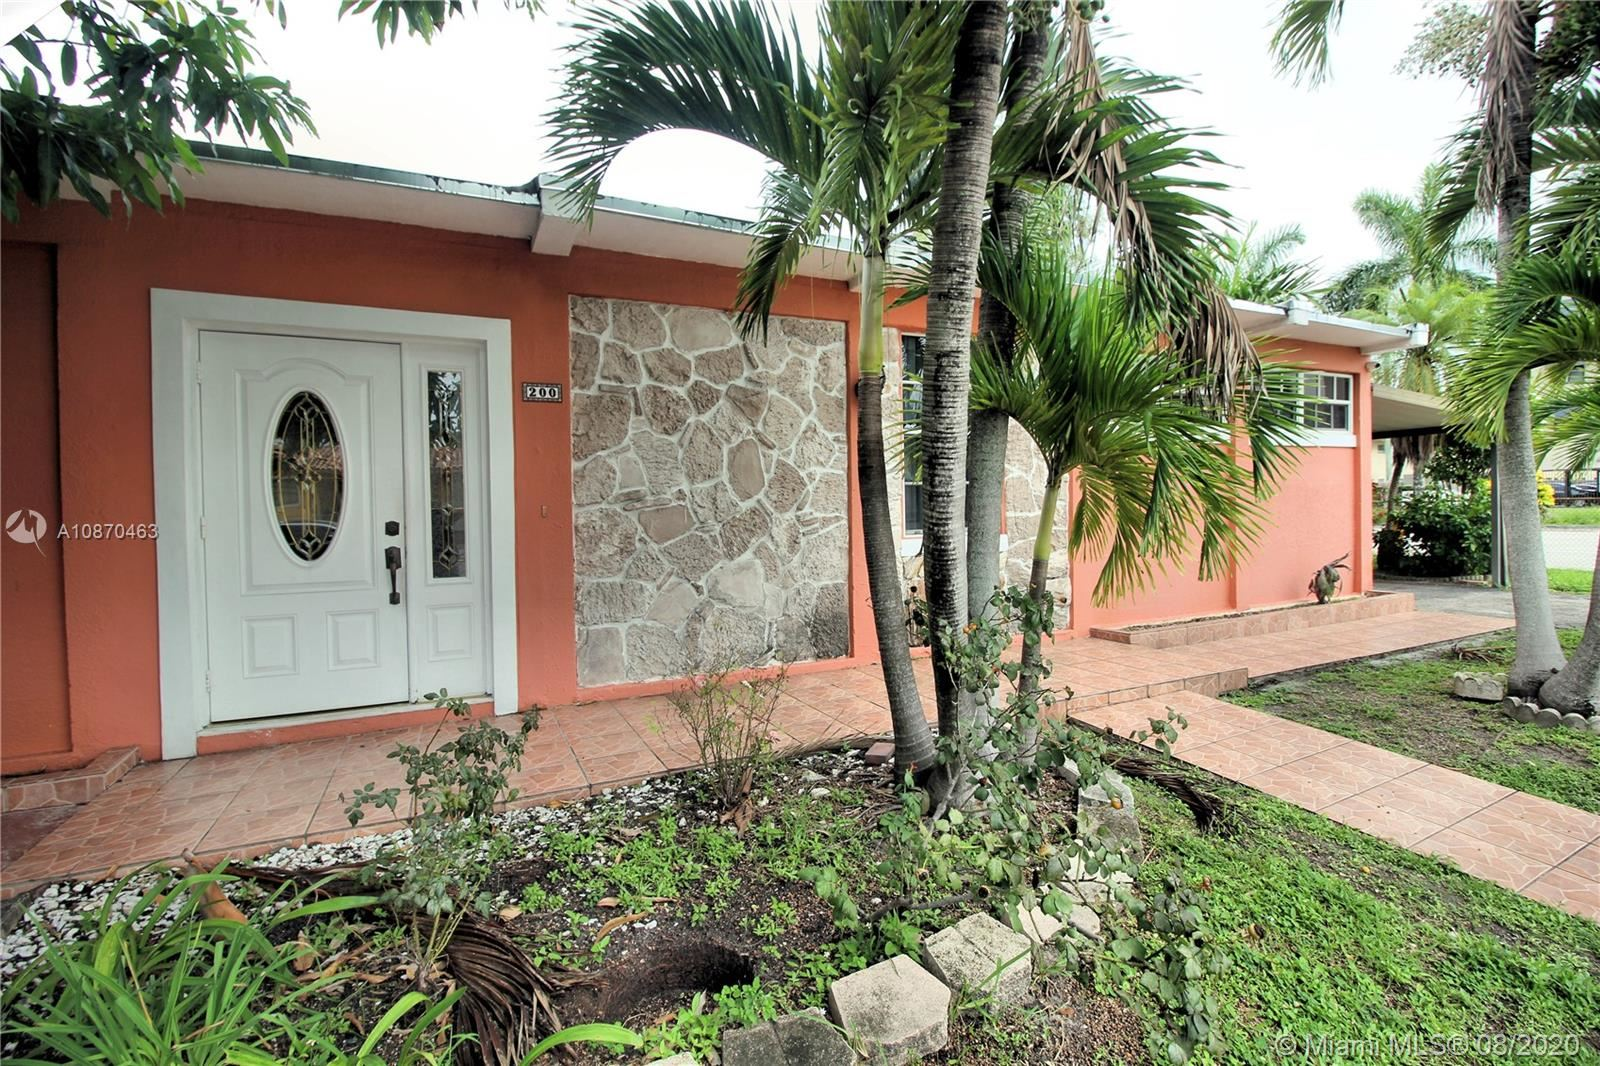 200 NW 72nd Ave, Miami, FL 33126 - #: A10870463